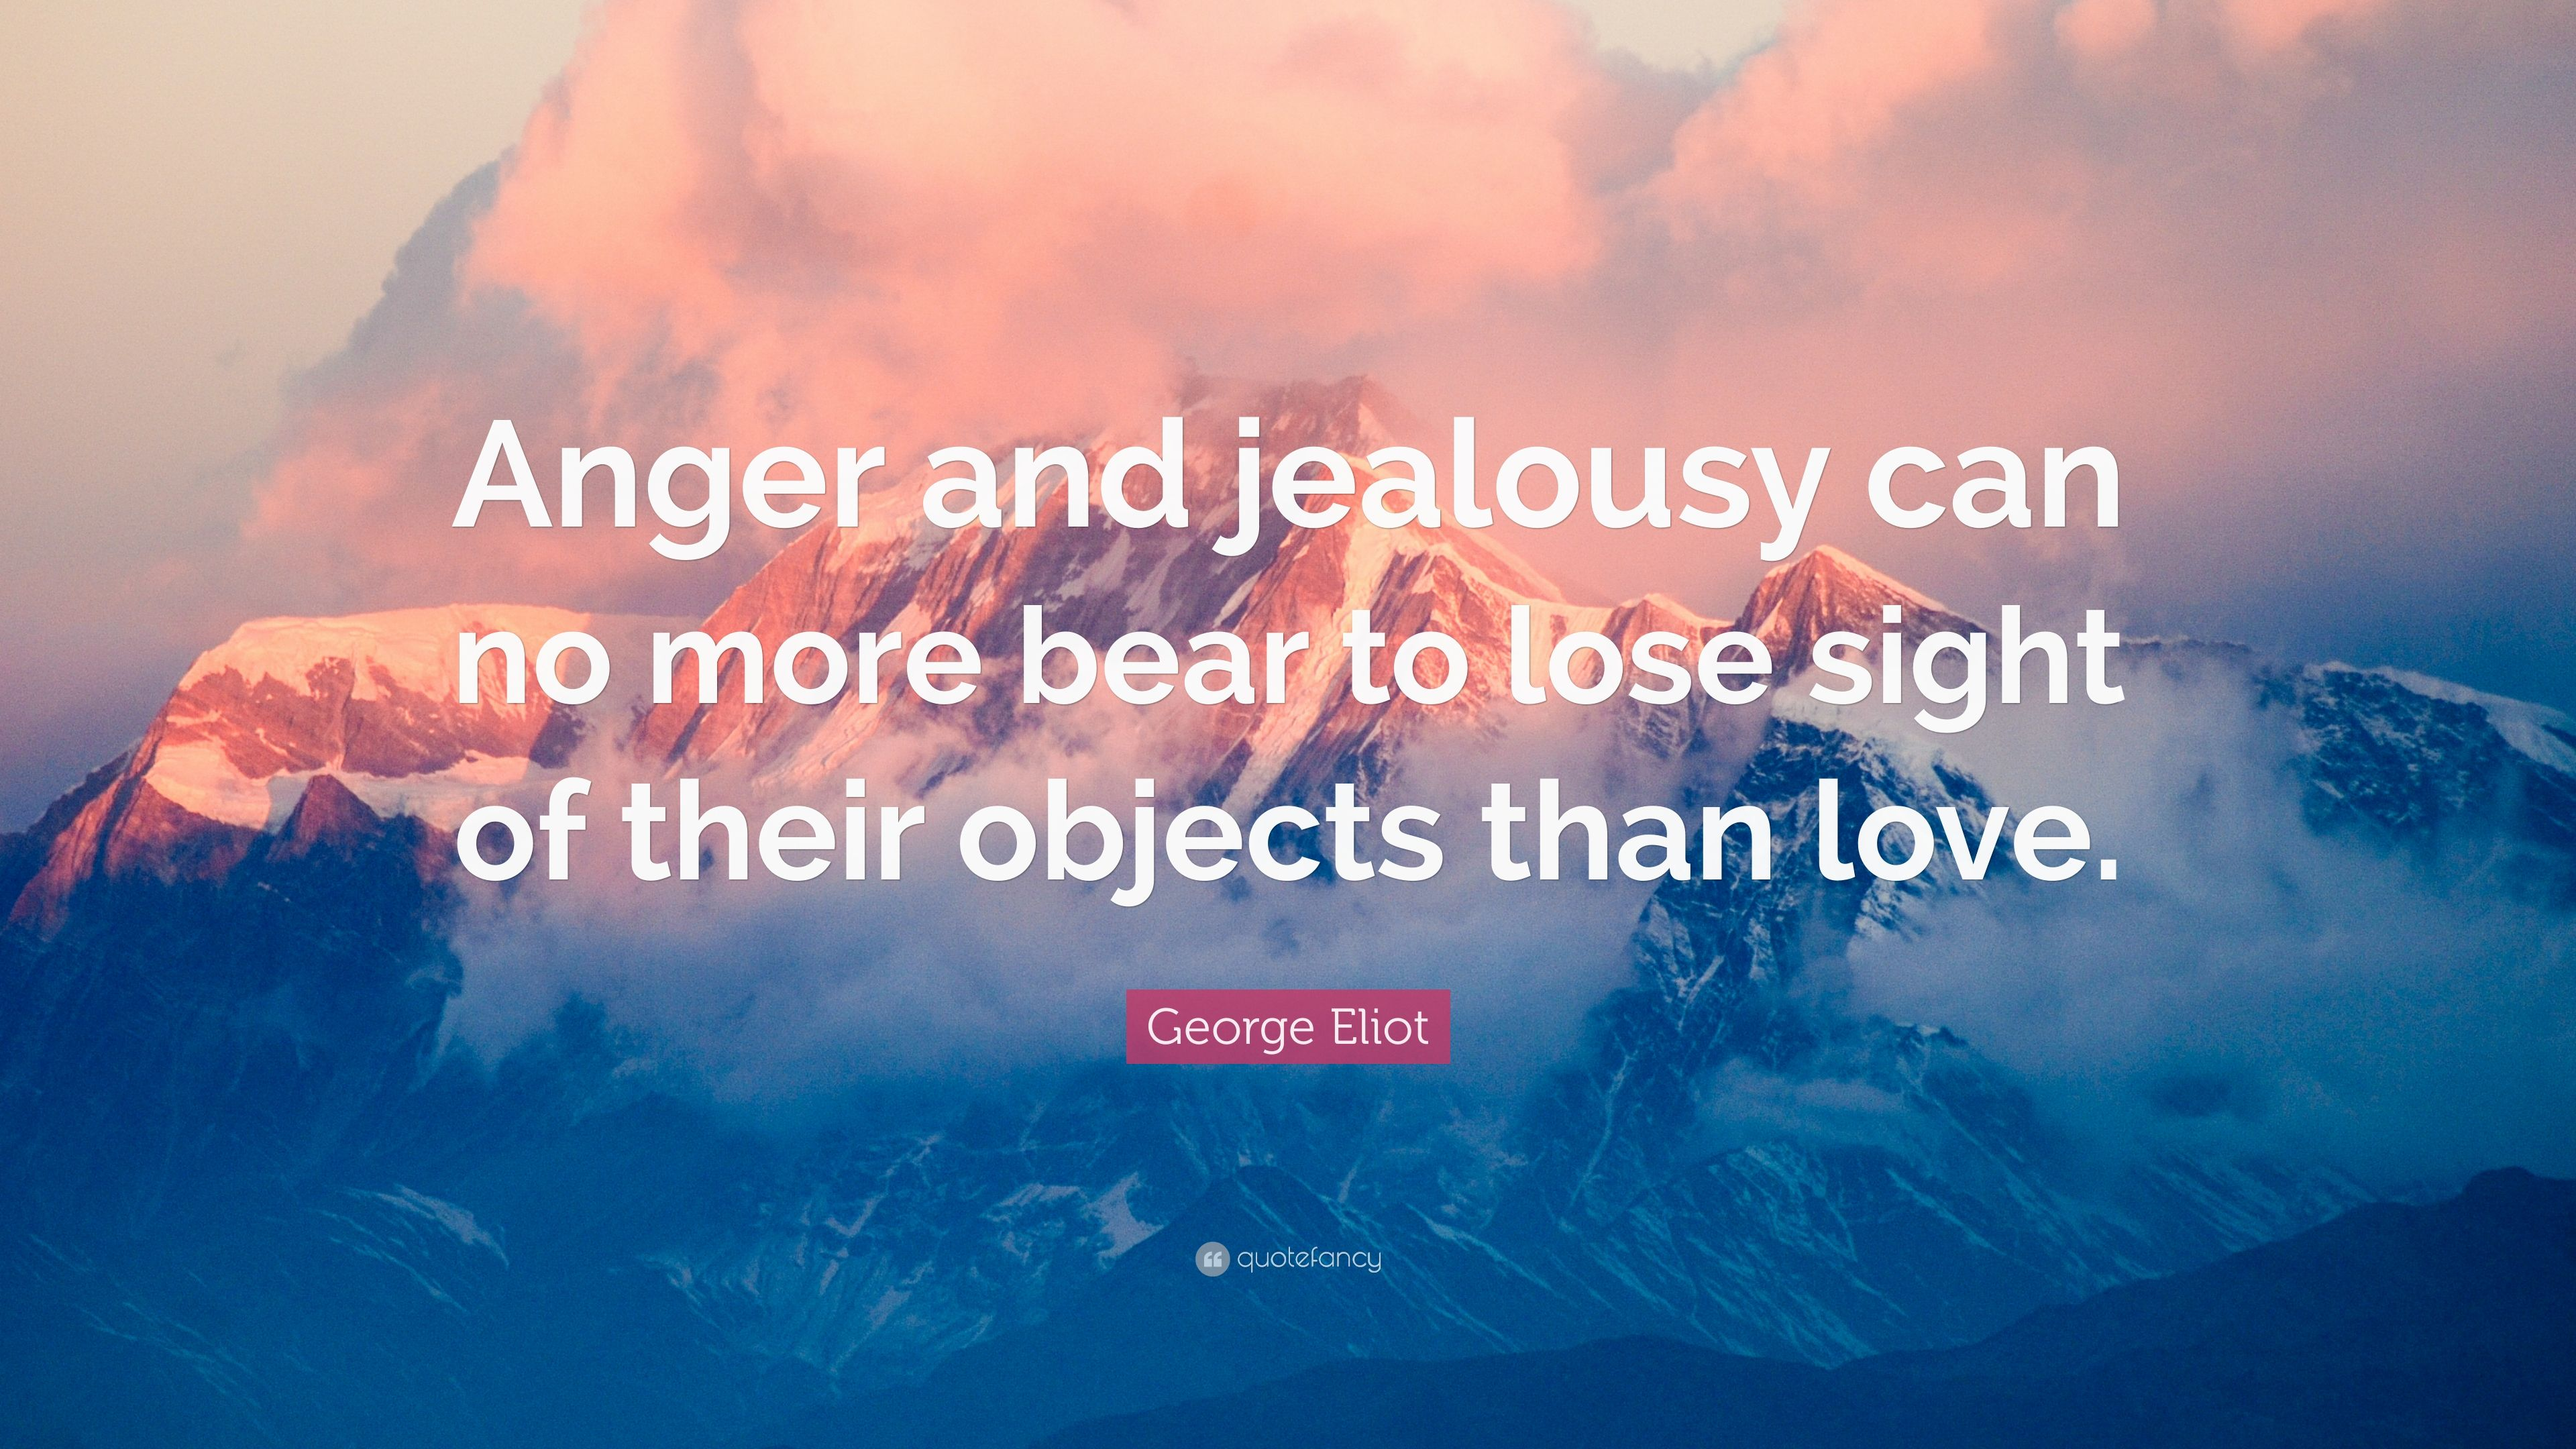 George Eliot Quote: U201cAnger And Jealousy Can No More Bear To Lose Sight Of